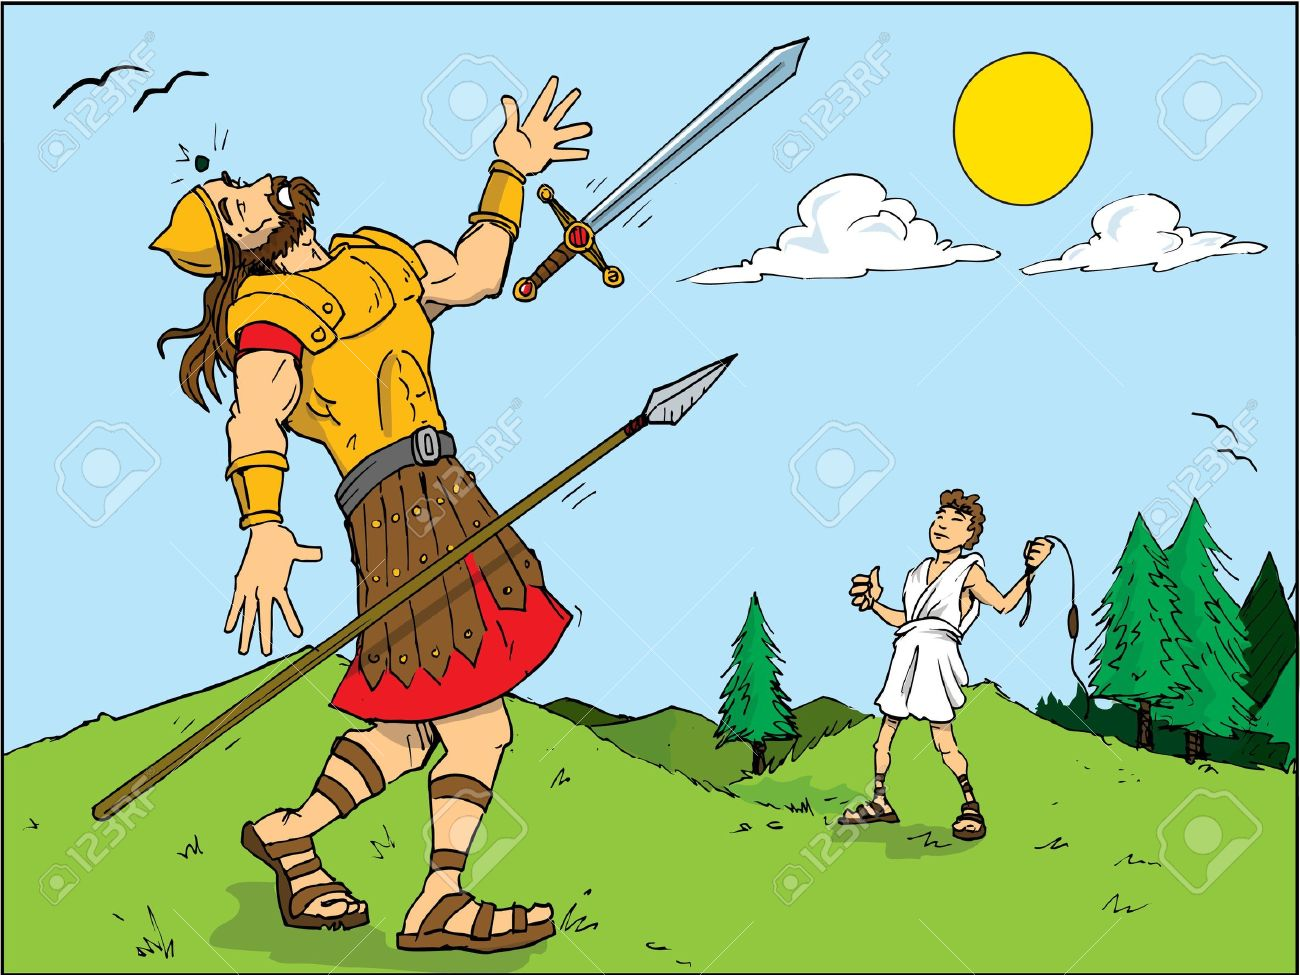 Cartoon of Goliath defeated by David. Bible story.